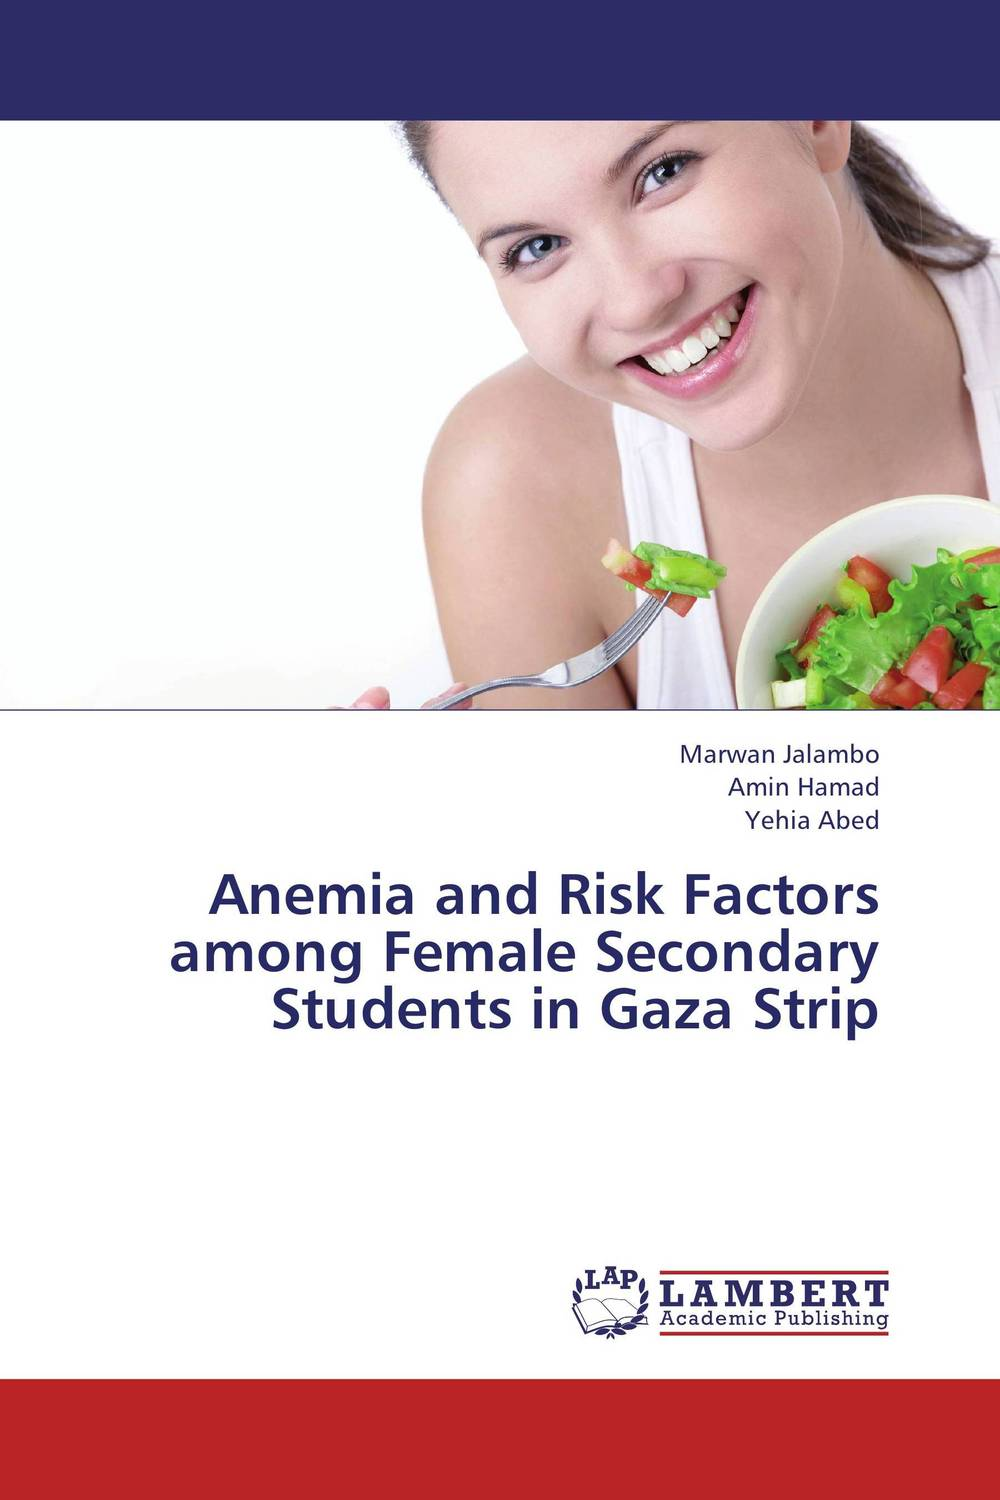 Anemia and Risk Factors among Female Secondary Students in Gaza Strip the relationship between dementias and language disorders